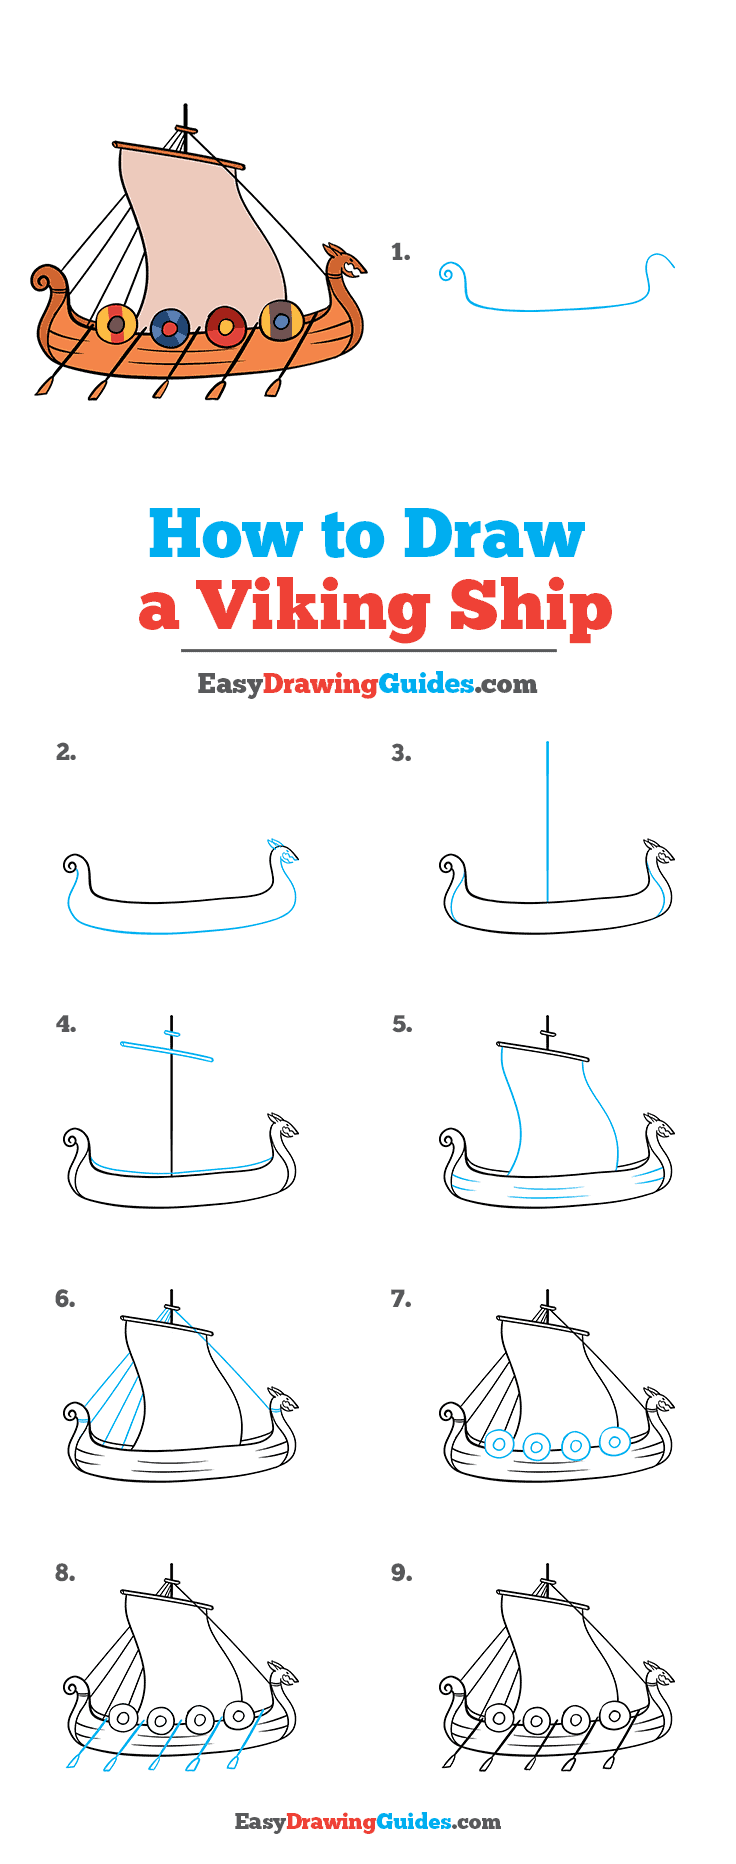 How to Draw Viking Ship